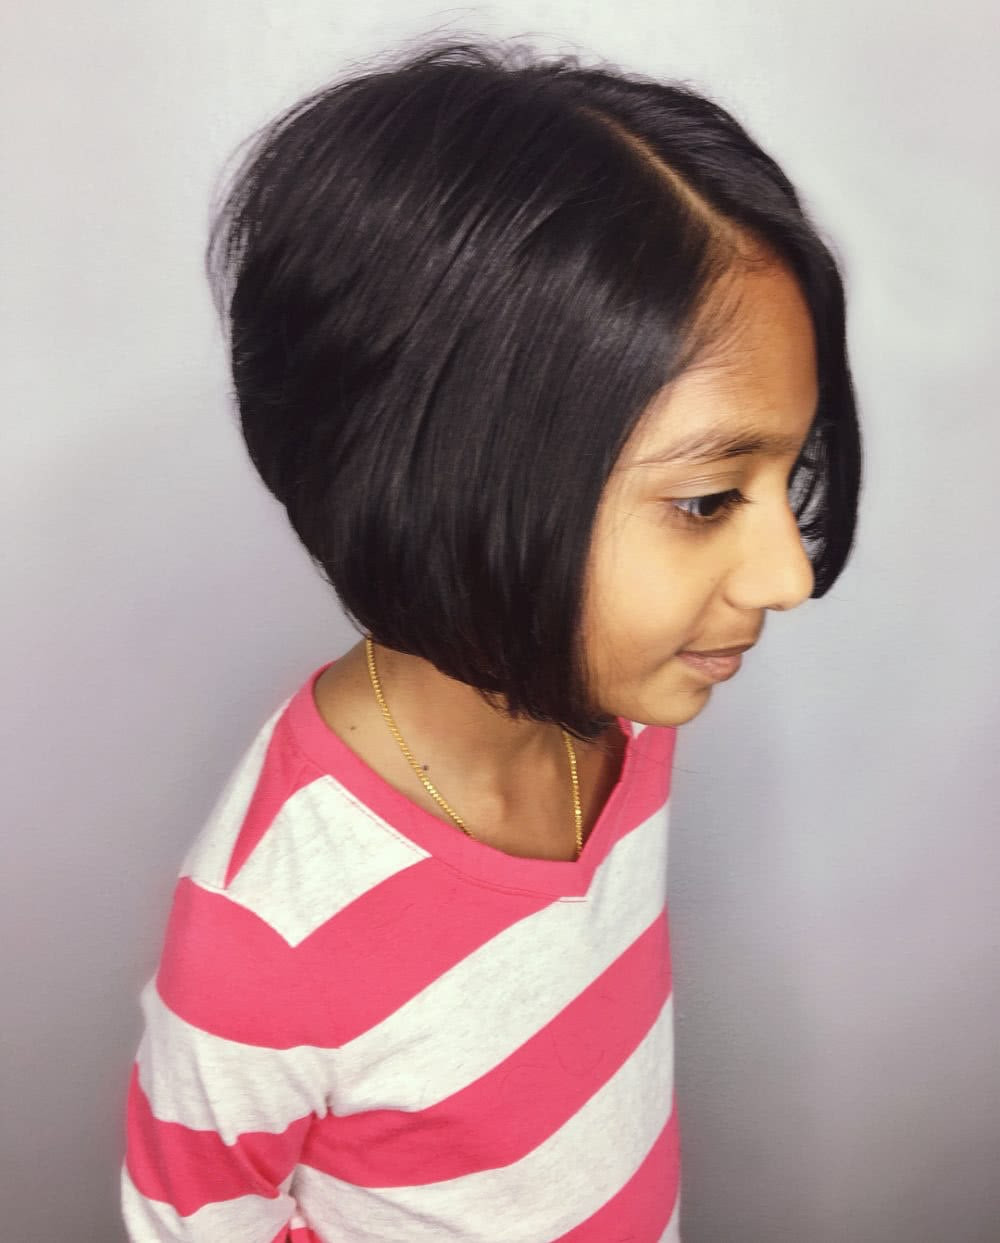 Kids Haircuts Houston  29 Cutest Little Girl Hairstyles for 2019